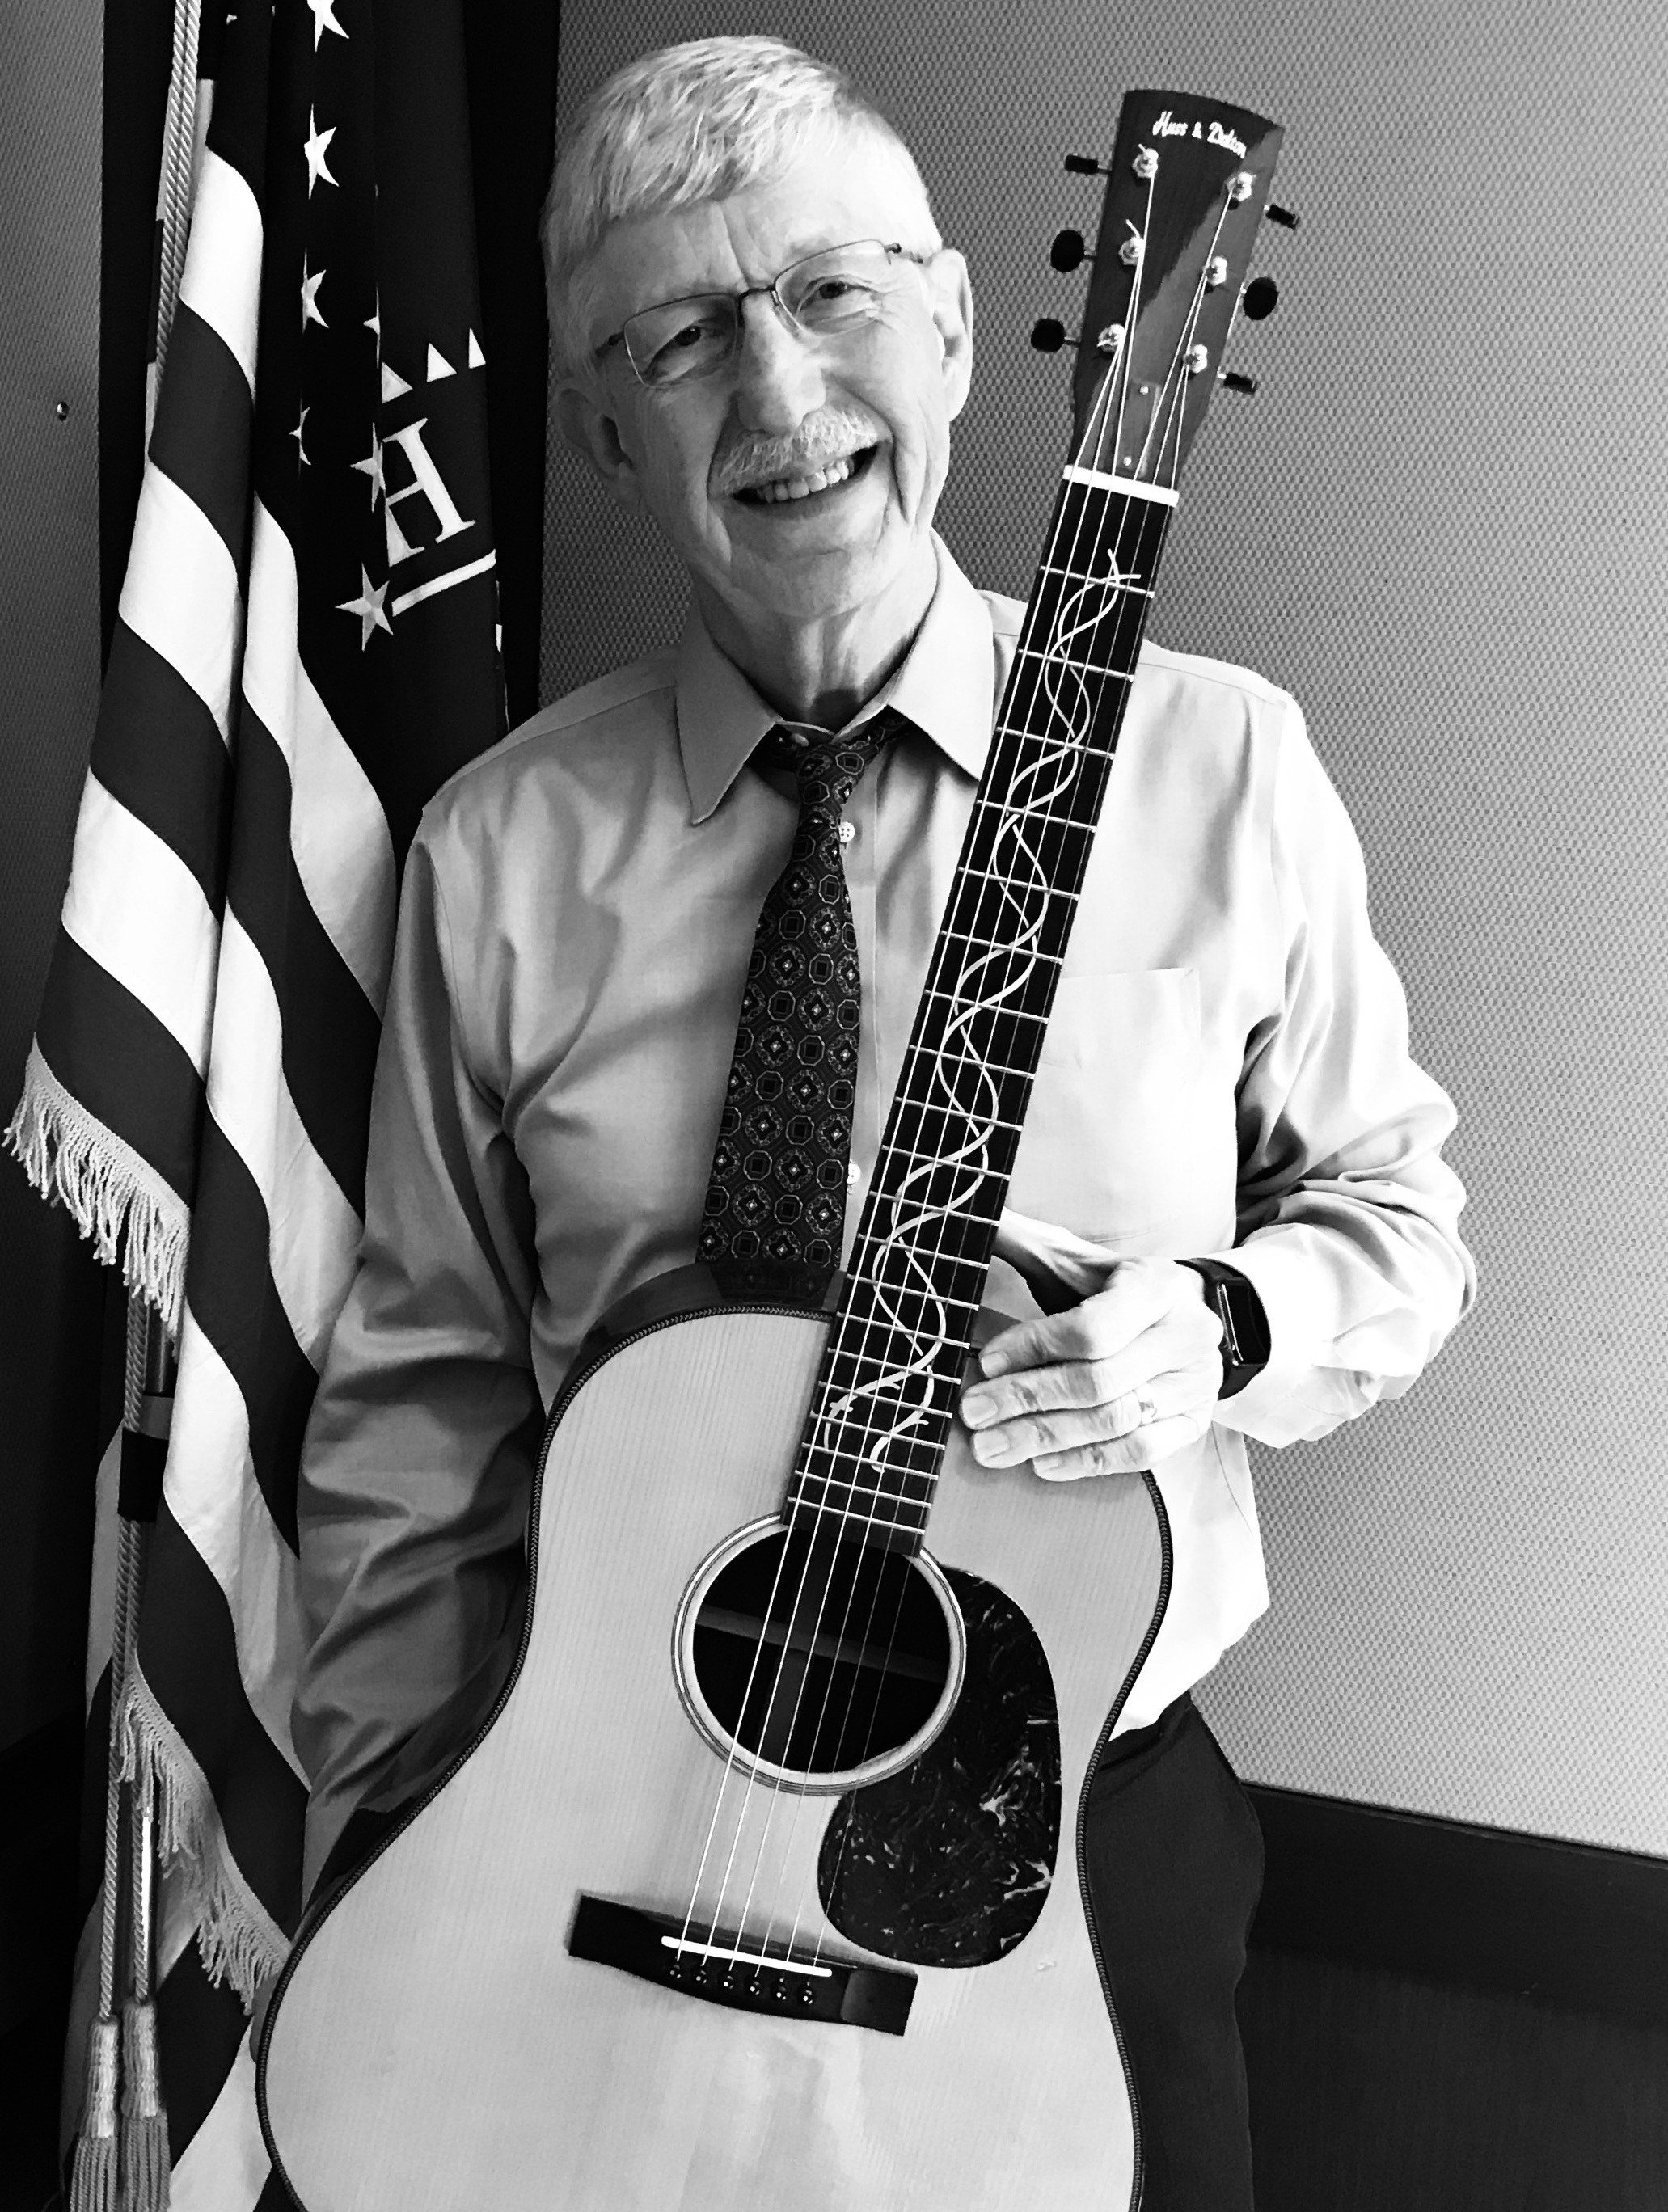 A conversation with Dr. Francis Collins